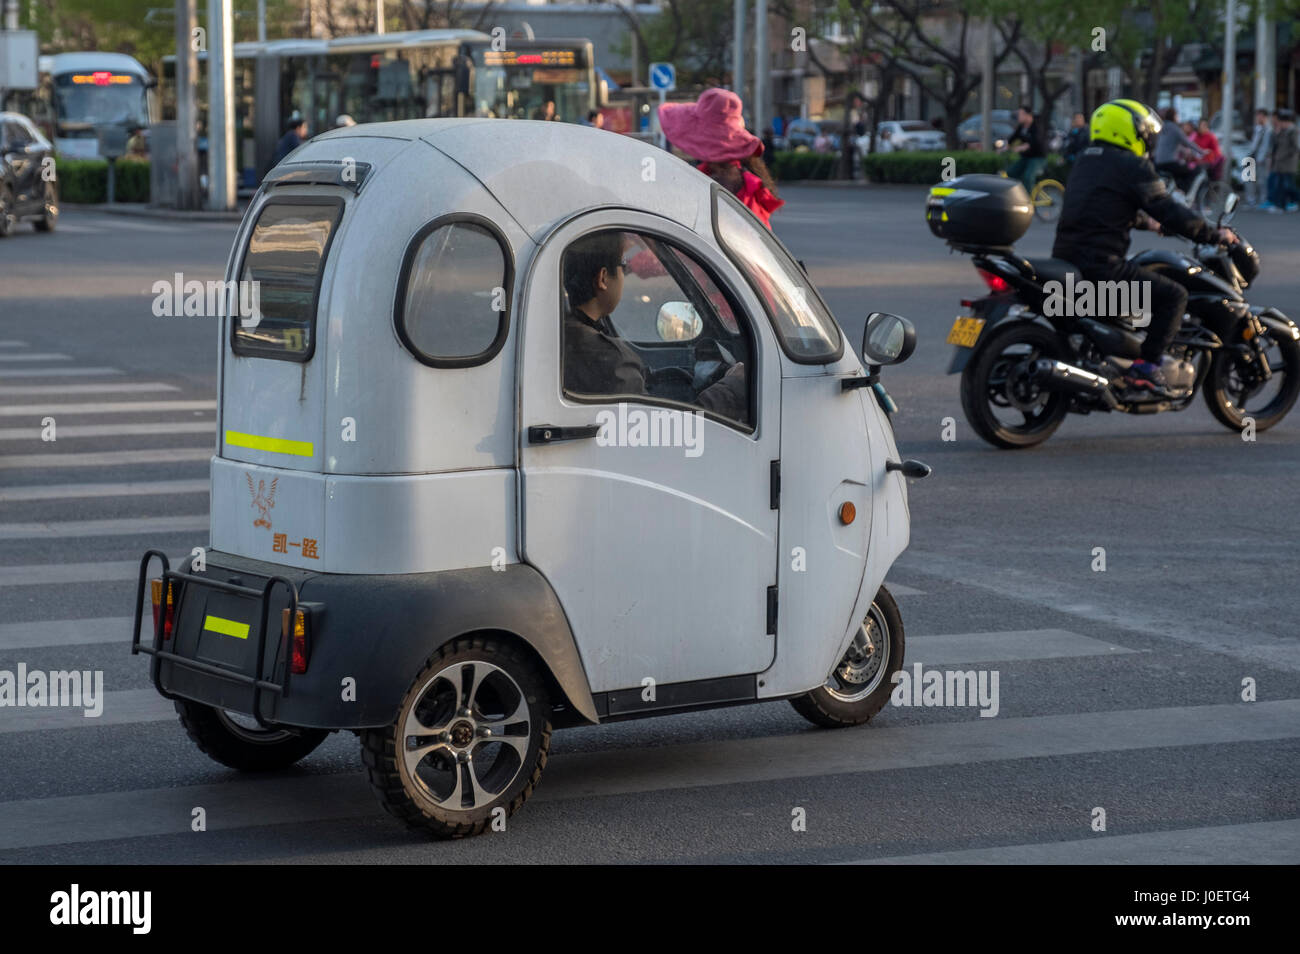 An unlicensed mini electric car is seen in Beijing, China. 11-Apr-2017 Stock Photo